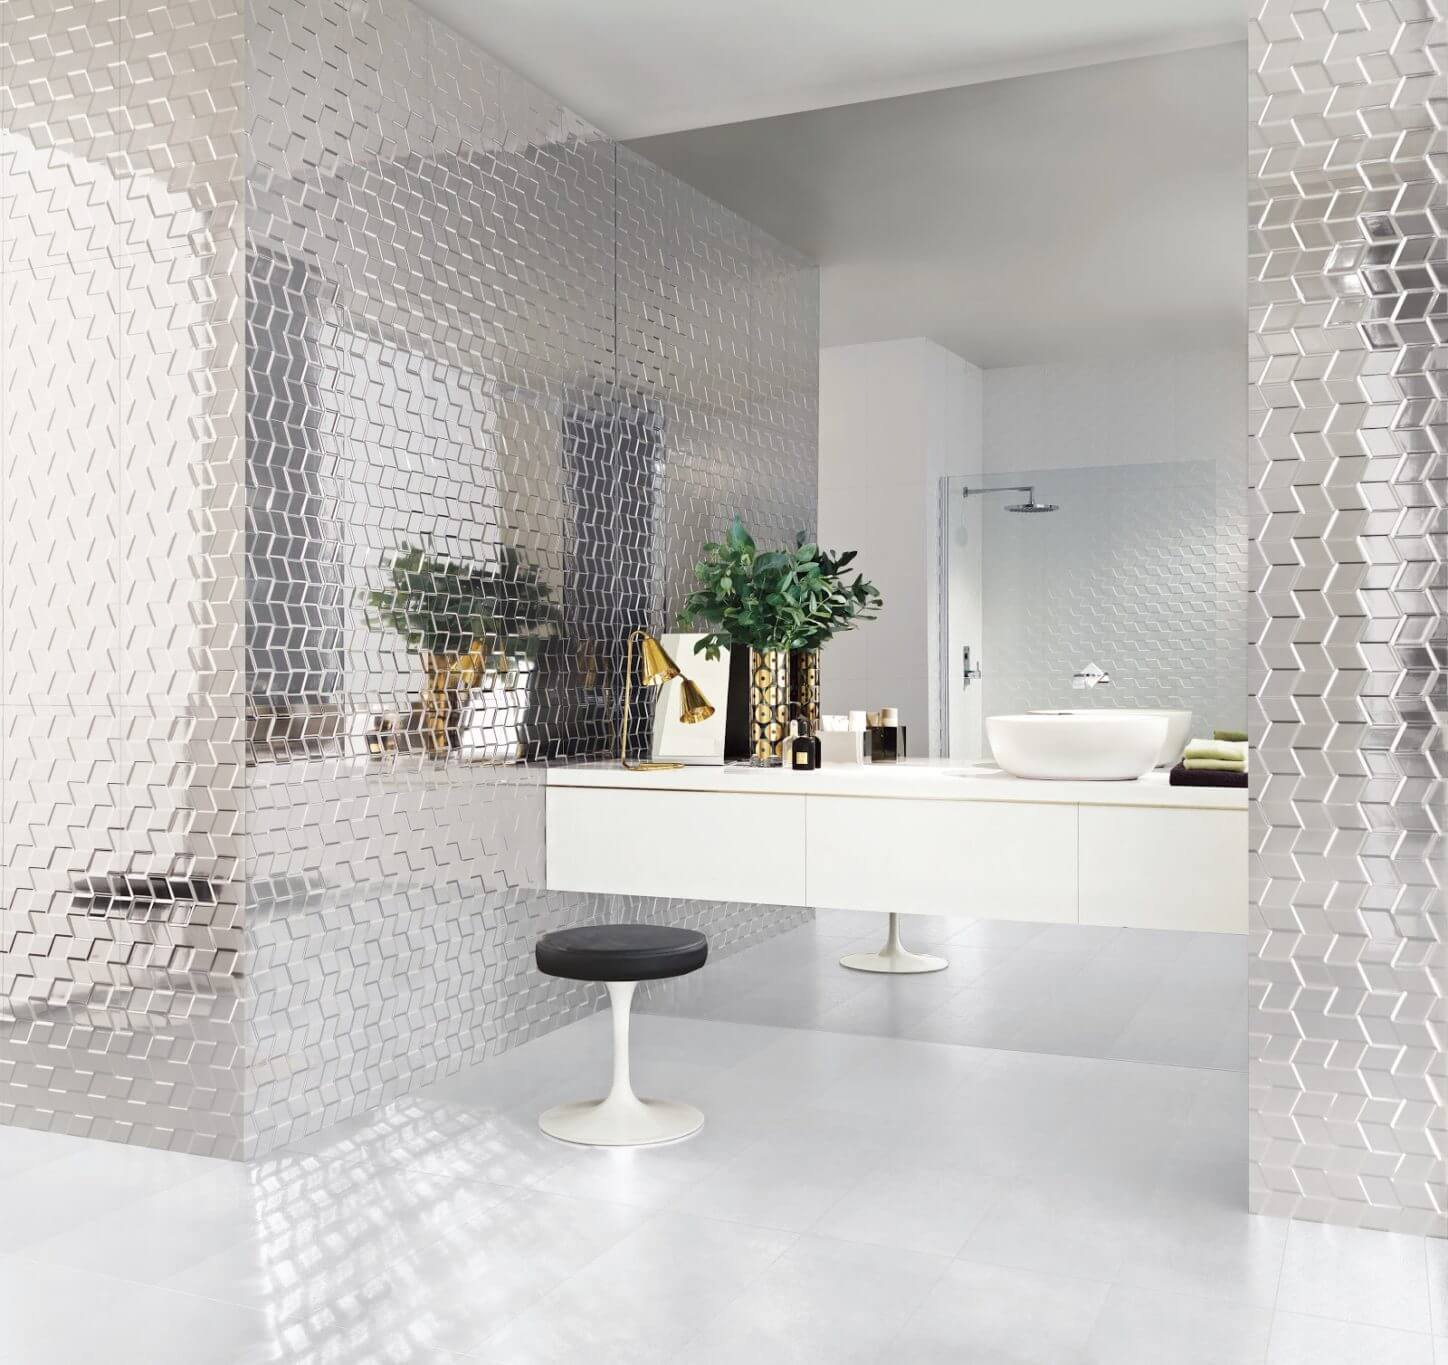 Mosaic Bathroom Tile Ideas: 40 Free Shower Tile Ideas (Tips For Choosing Tile)